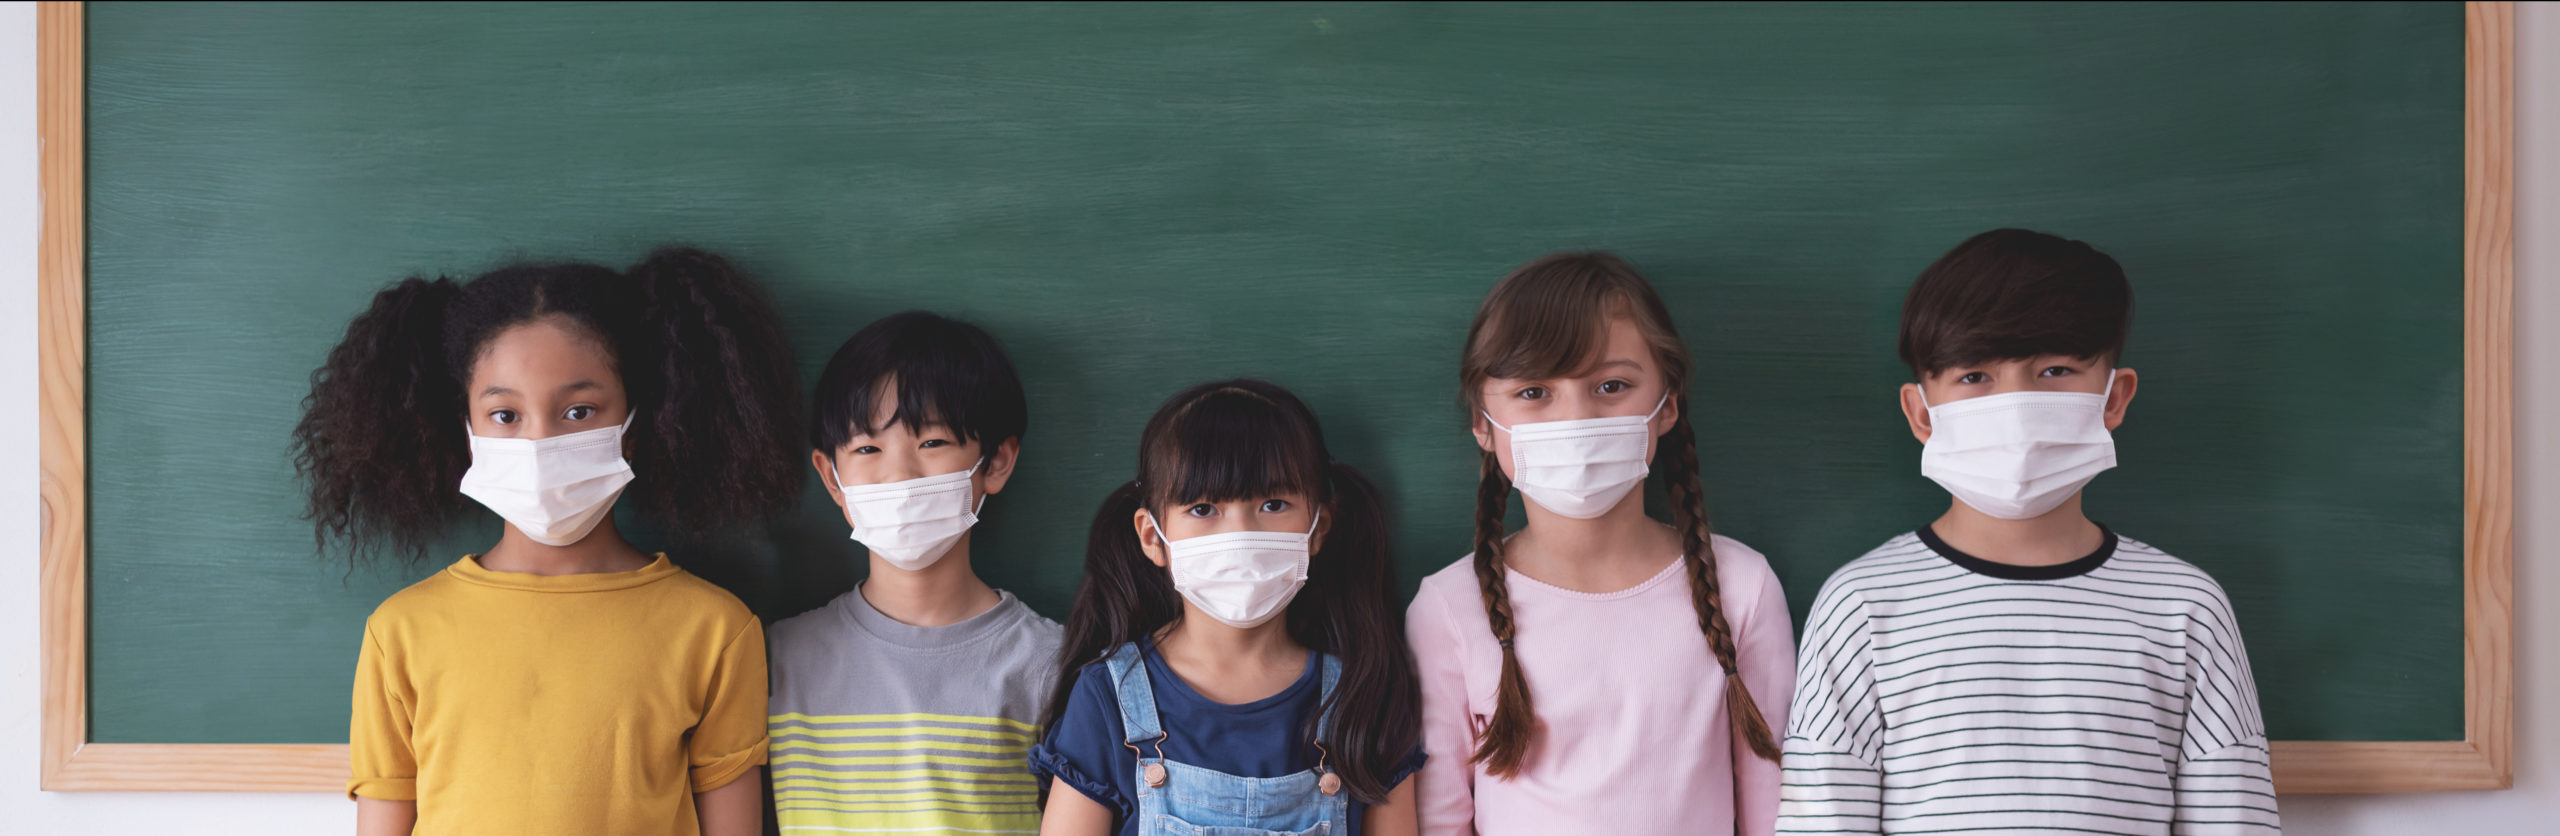 Children in front of a school chalkboard wearing protective face masks